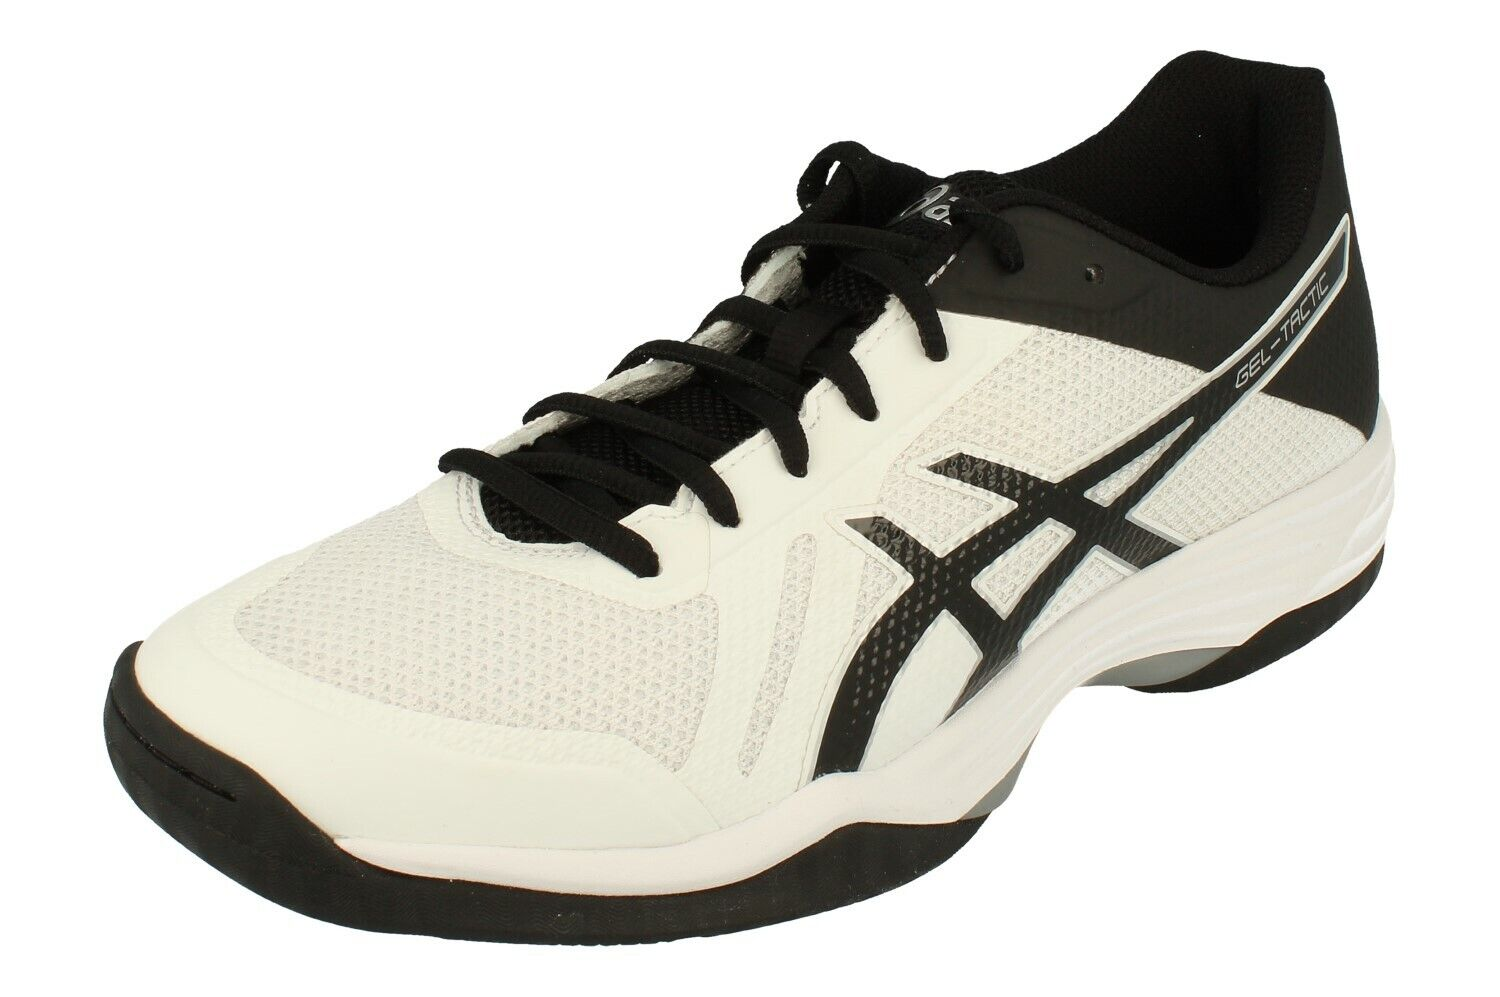 Asics Gel-Tactic Mens Volleyball Trainers B702N Sneakers shoes 0190